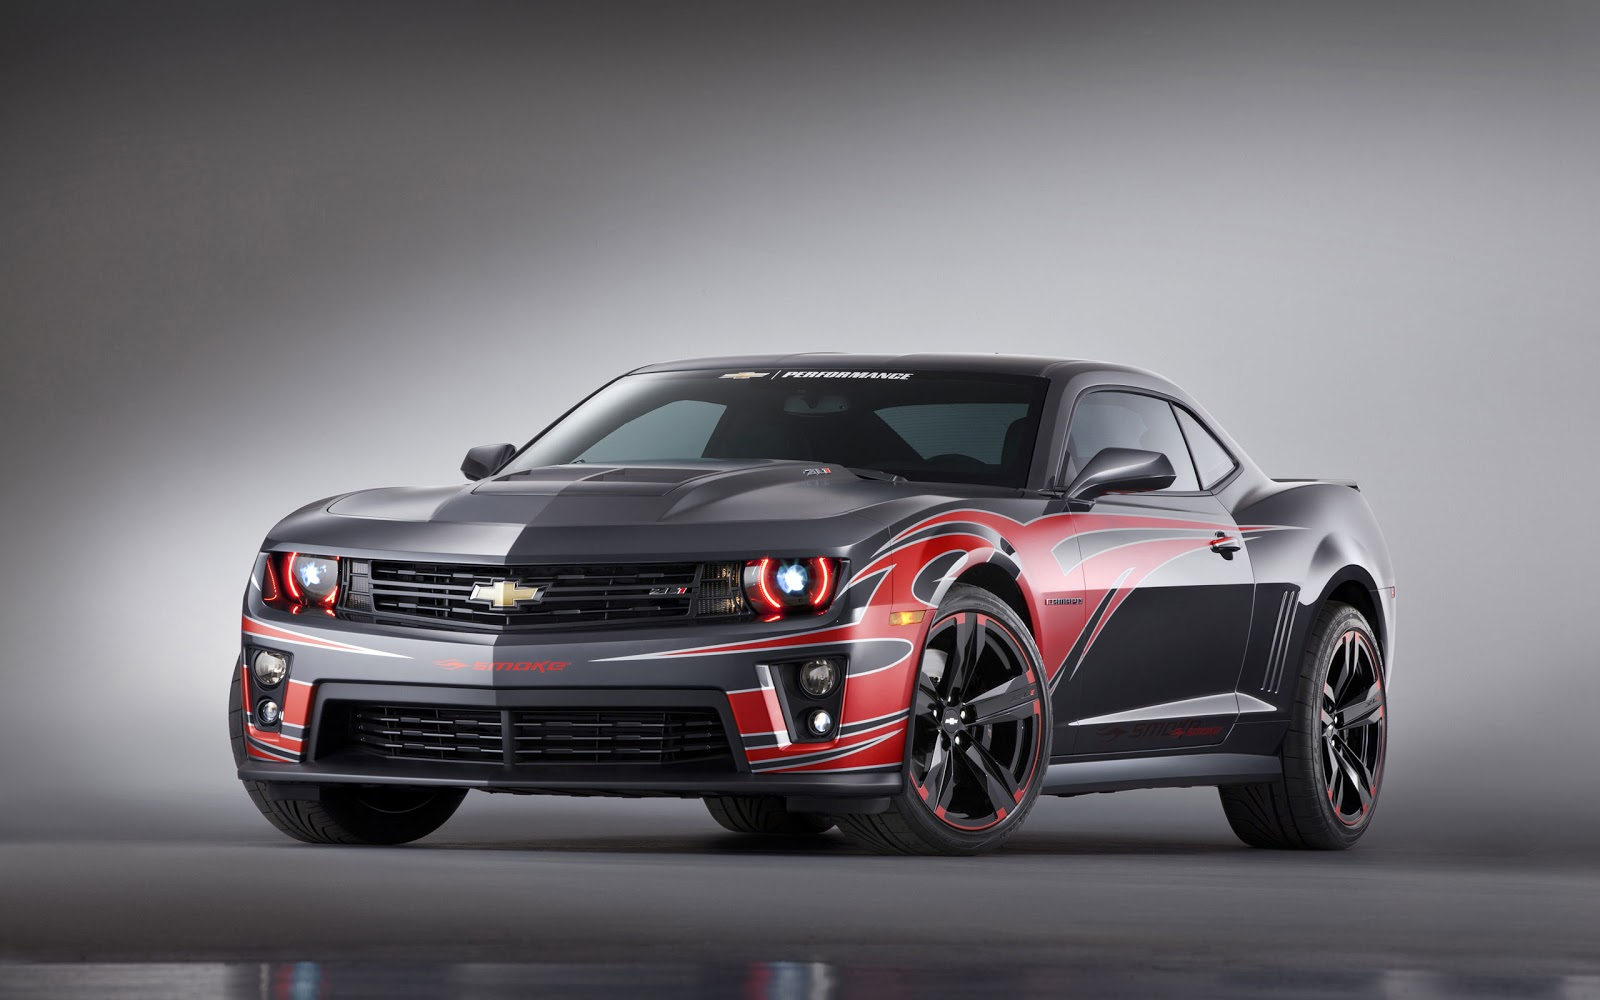 Wallpaper hd : 2012 Chevrolet Camaro ZL1 Hot Wheels